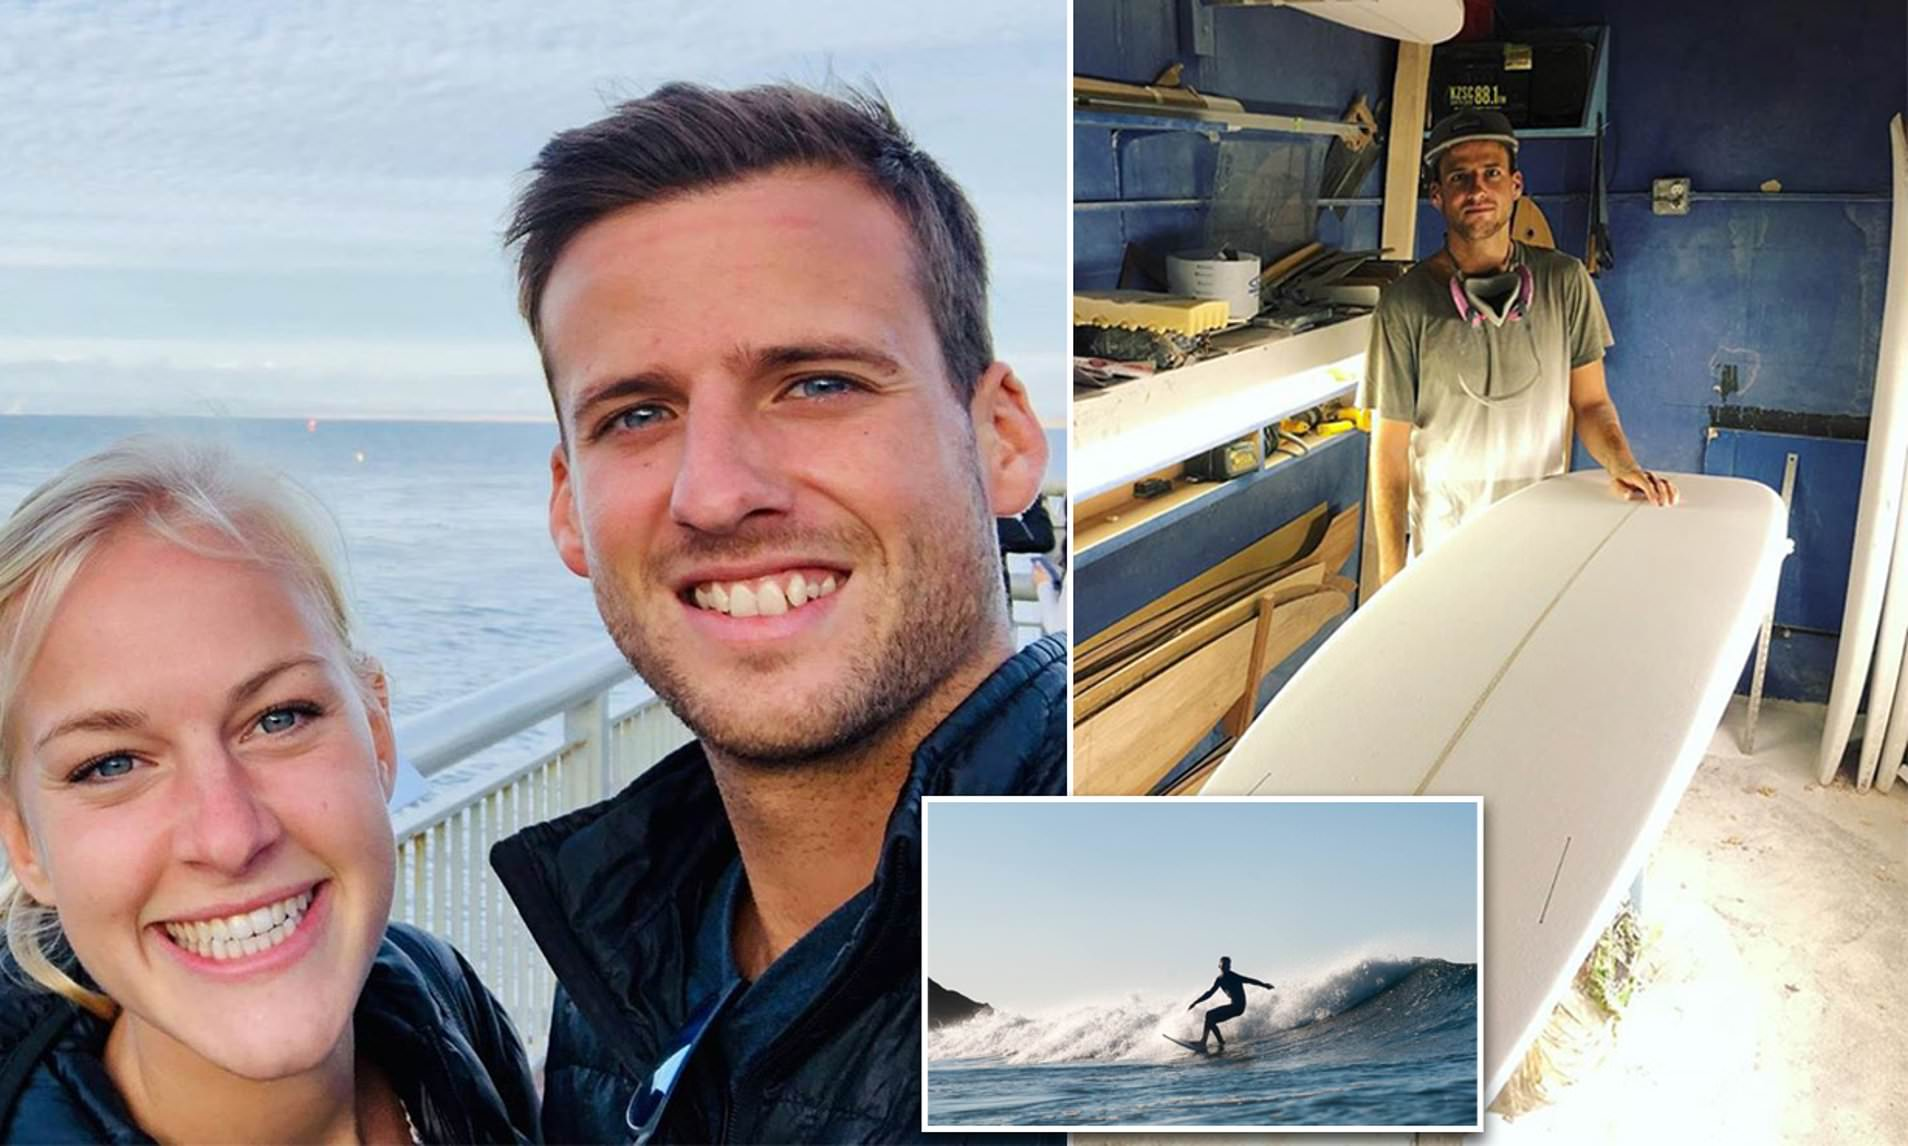 A 26 Year Old Surfer Dies After Being Attacked By A Shark Off The Coast Of California Video Maritime Herald